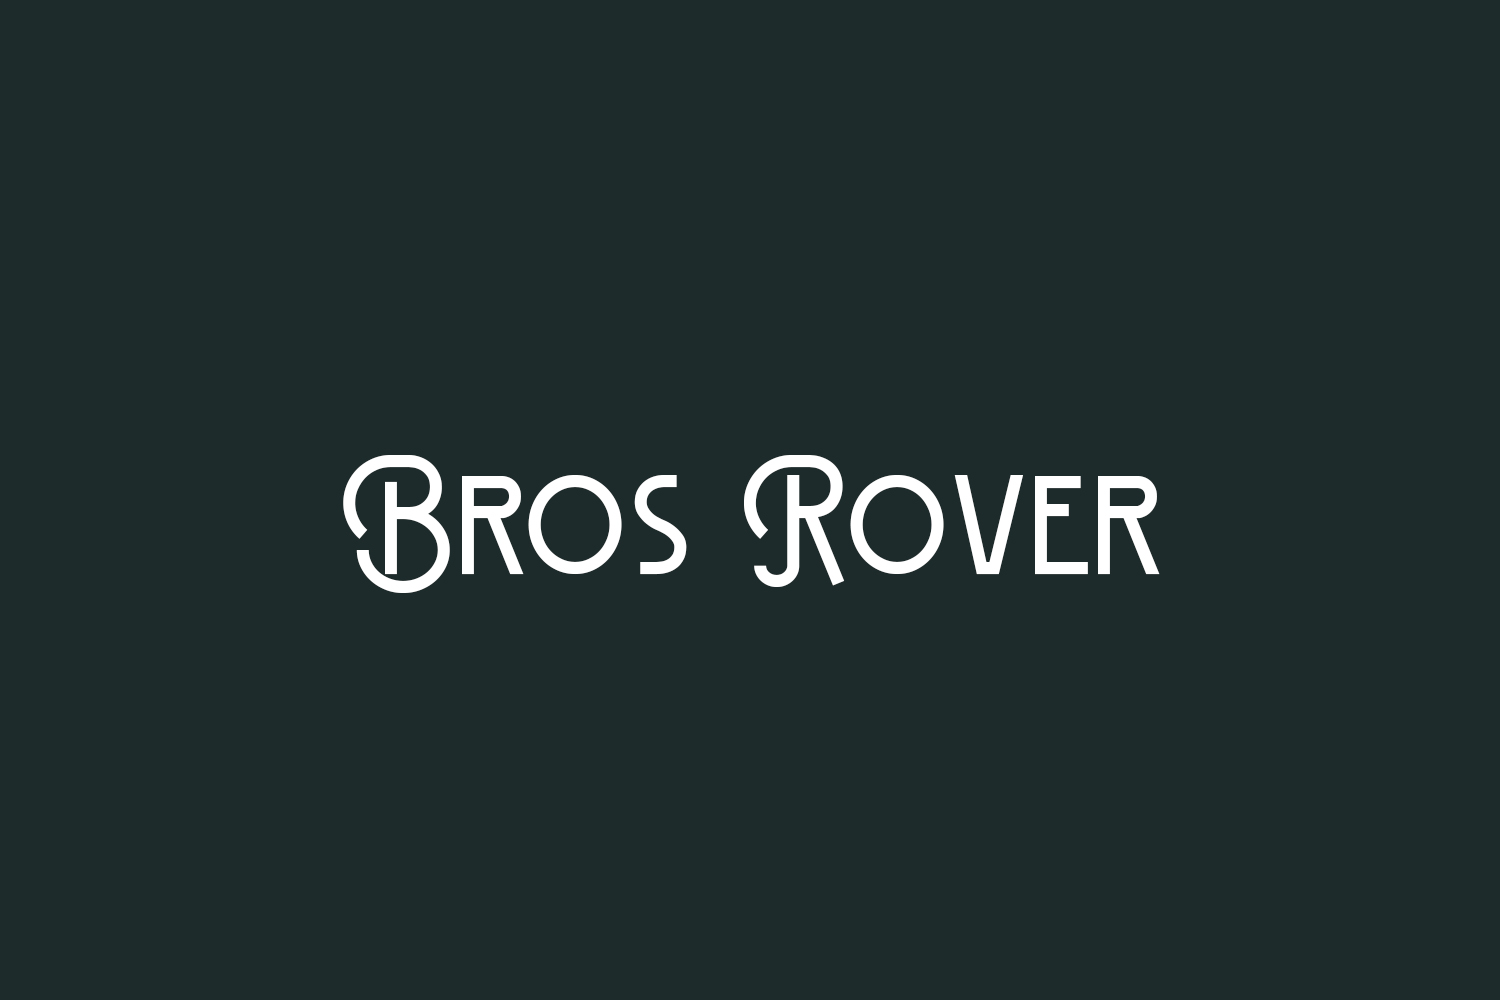 Bros Rover Free Font